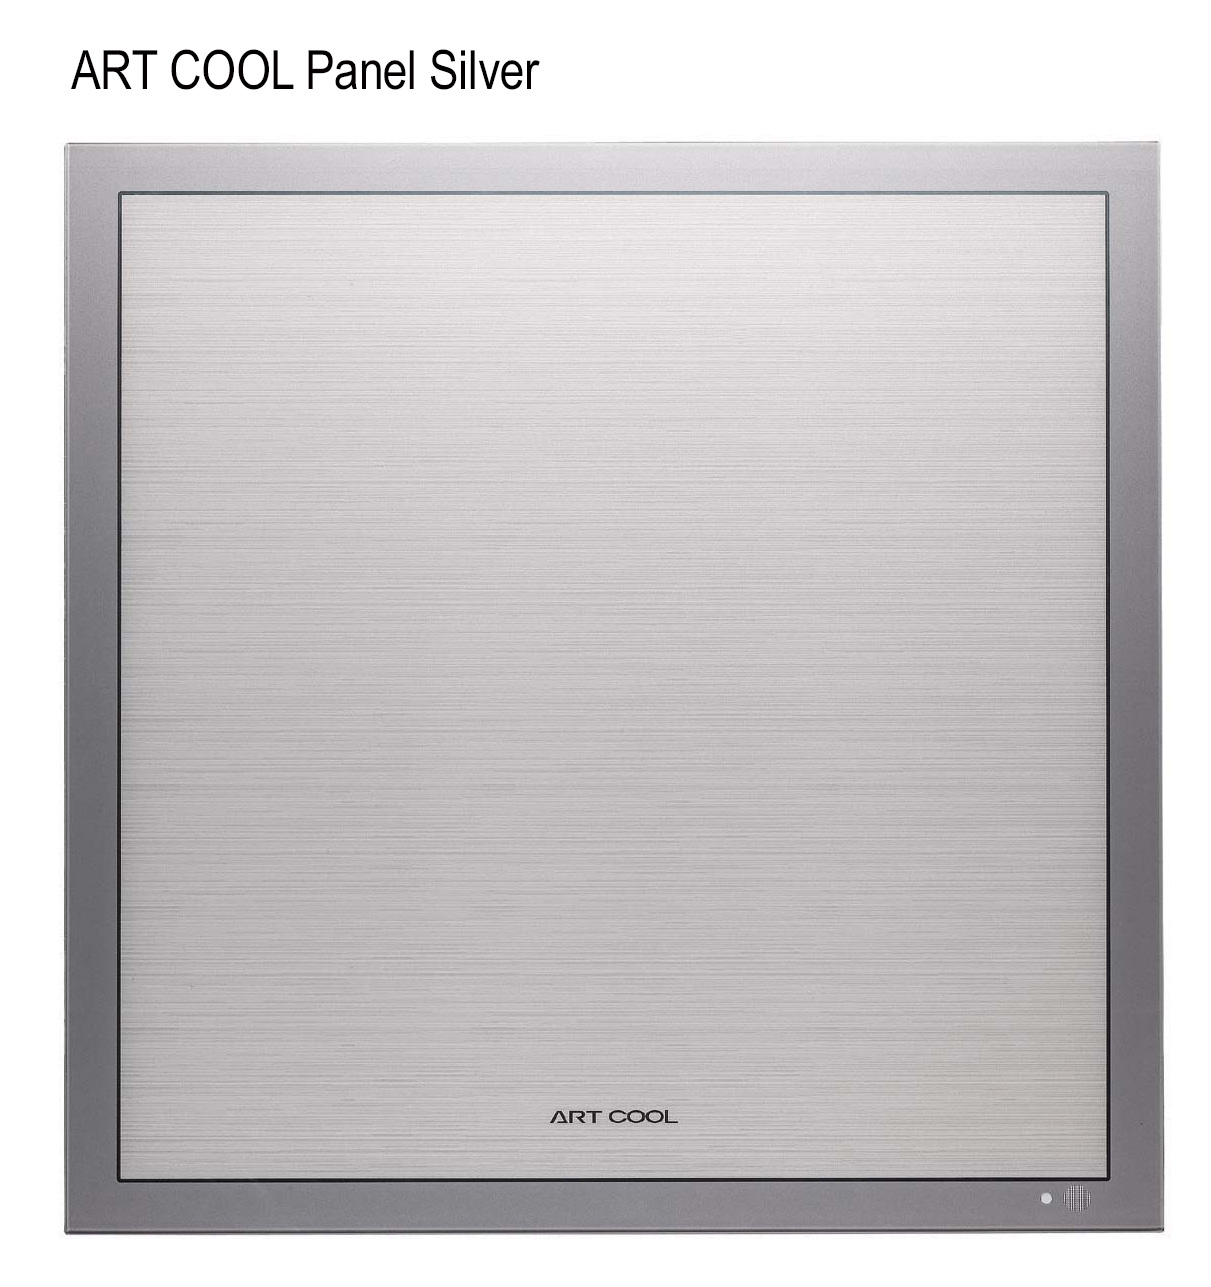 artcool-panel